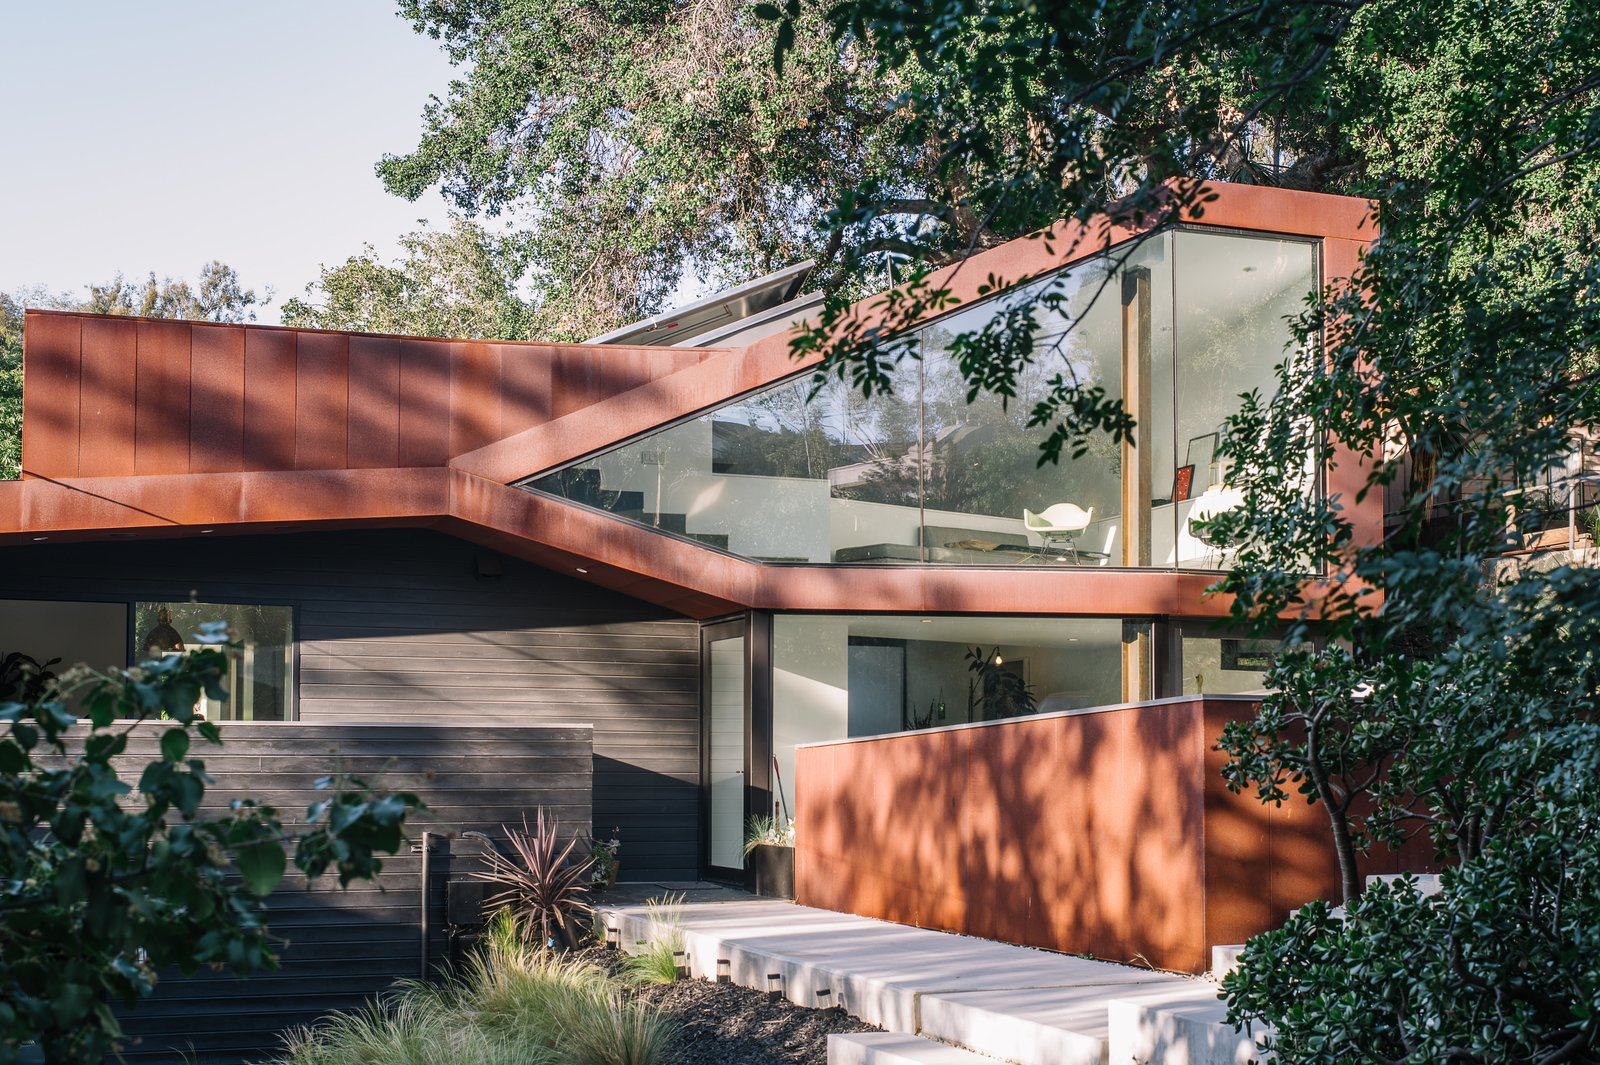 This Los Angeles Home is Driven by Automotive Design